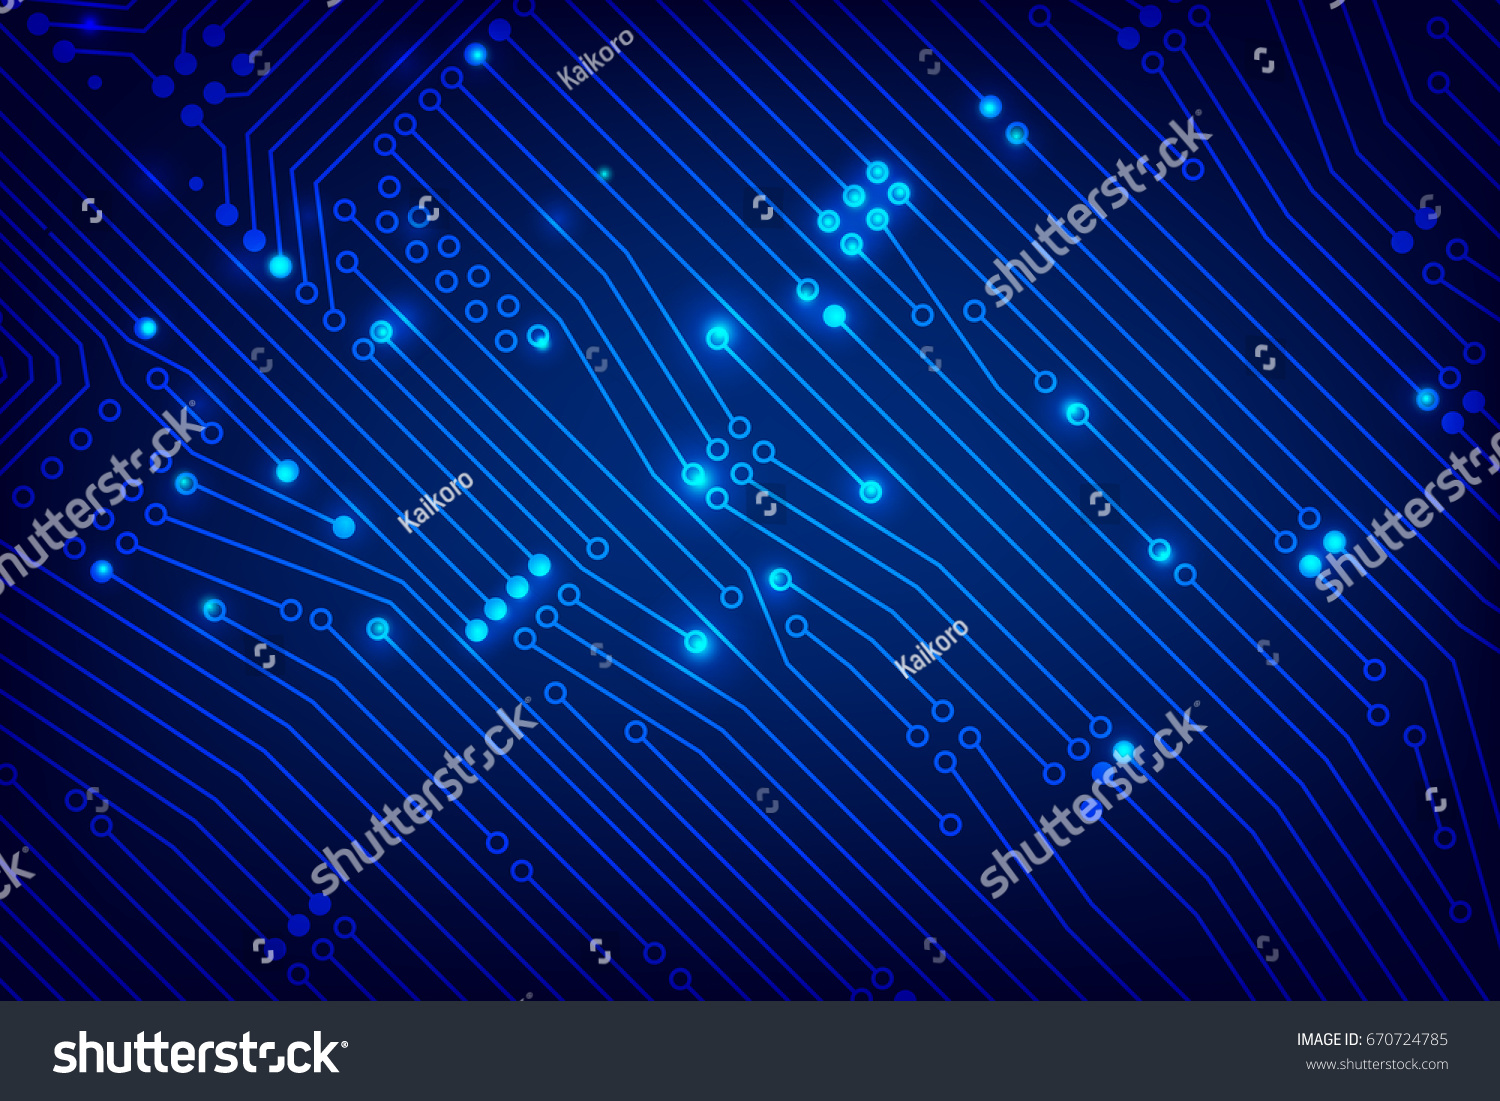 Abstract Dark Blue Background Print Circuit Stock Vector Royalty Printed Board Photos Images Pictures Shutterstock With Line And Dot Connection Element Illustration Eps10